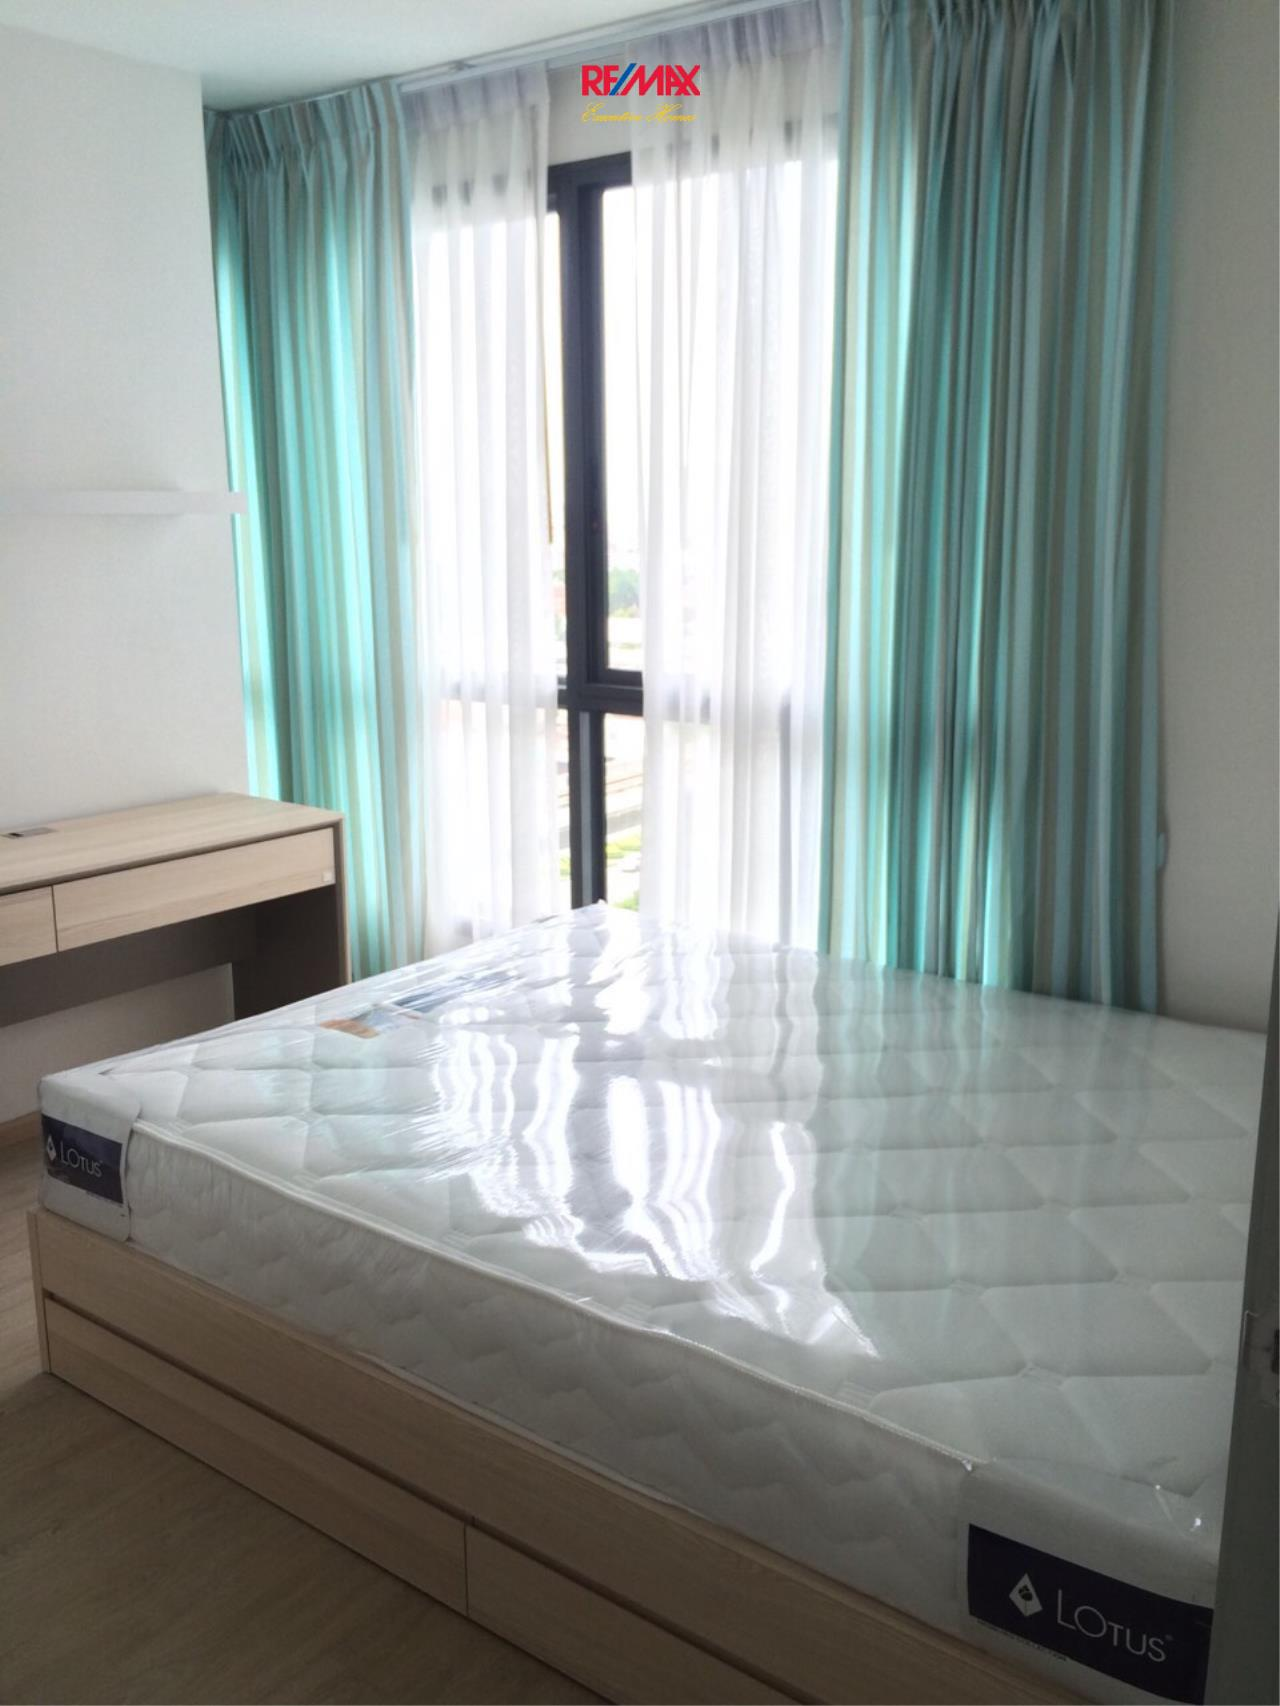 RE/MAX Executive Homes Agency's Nice 2 Bedroom for Rent Ideo Sathorn Thapra 3